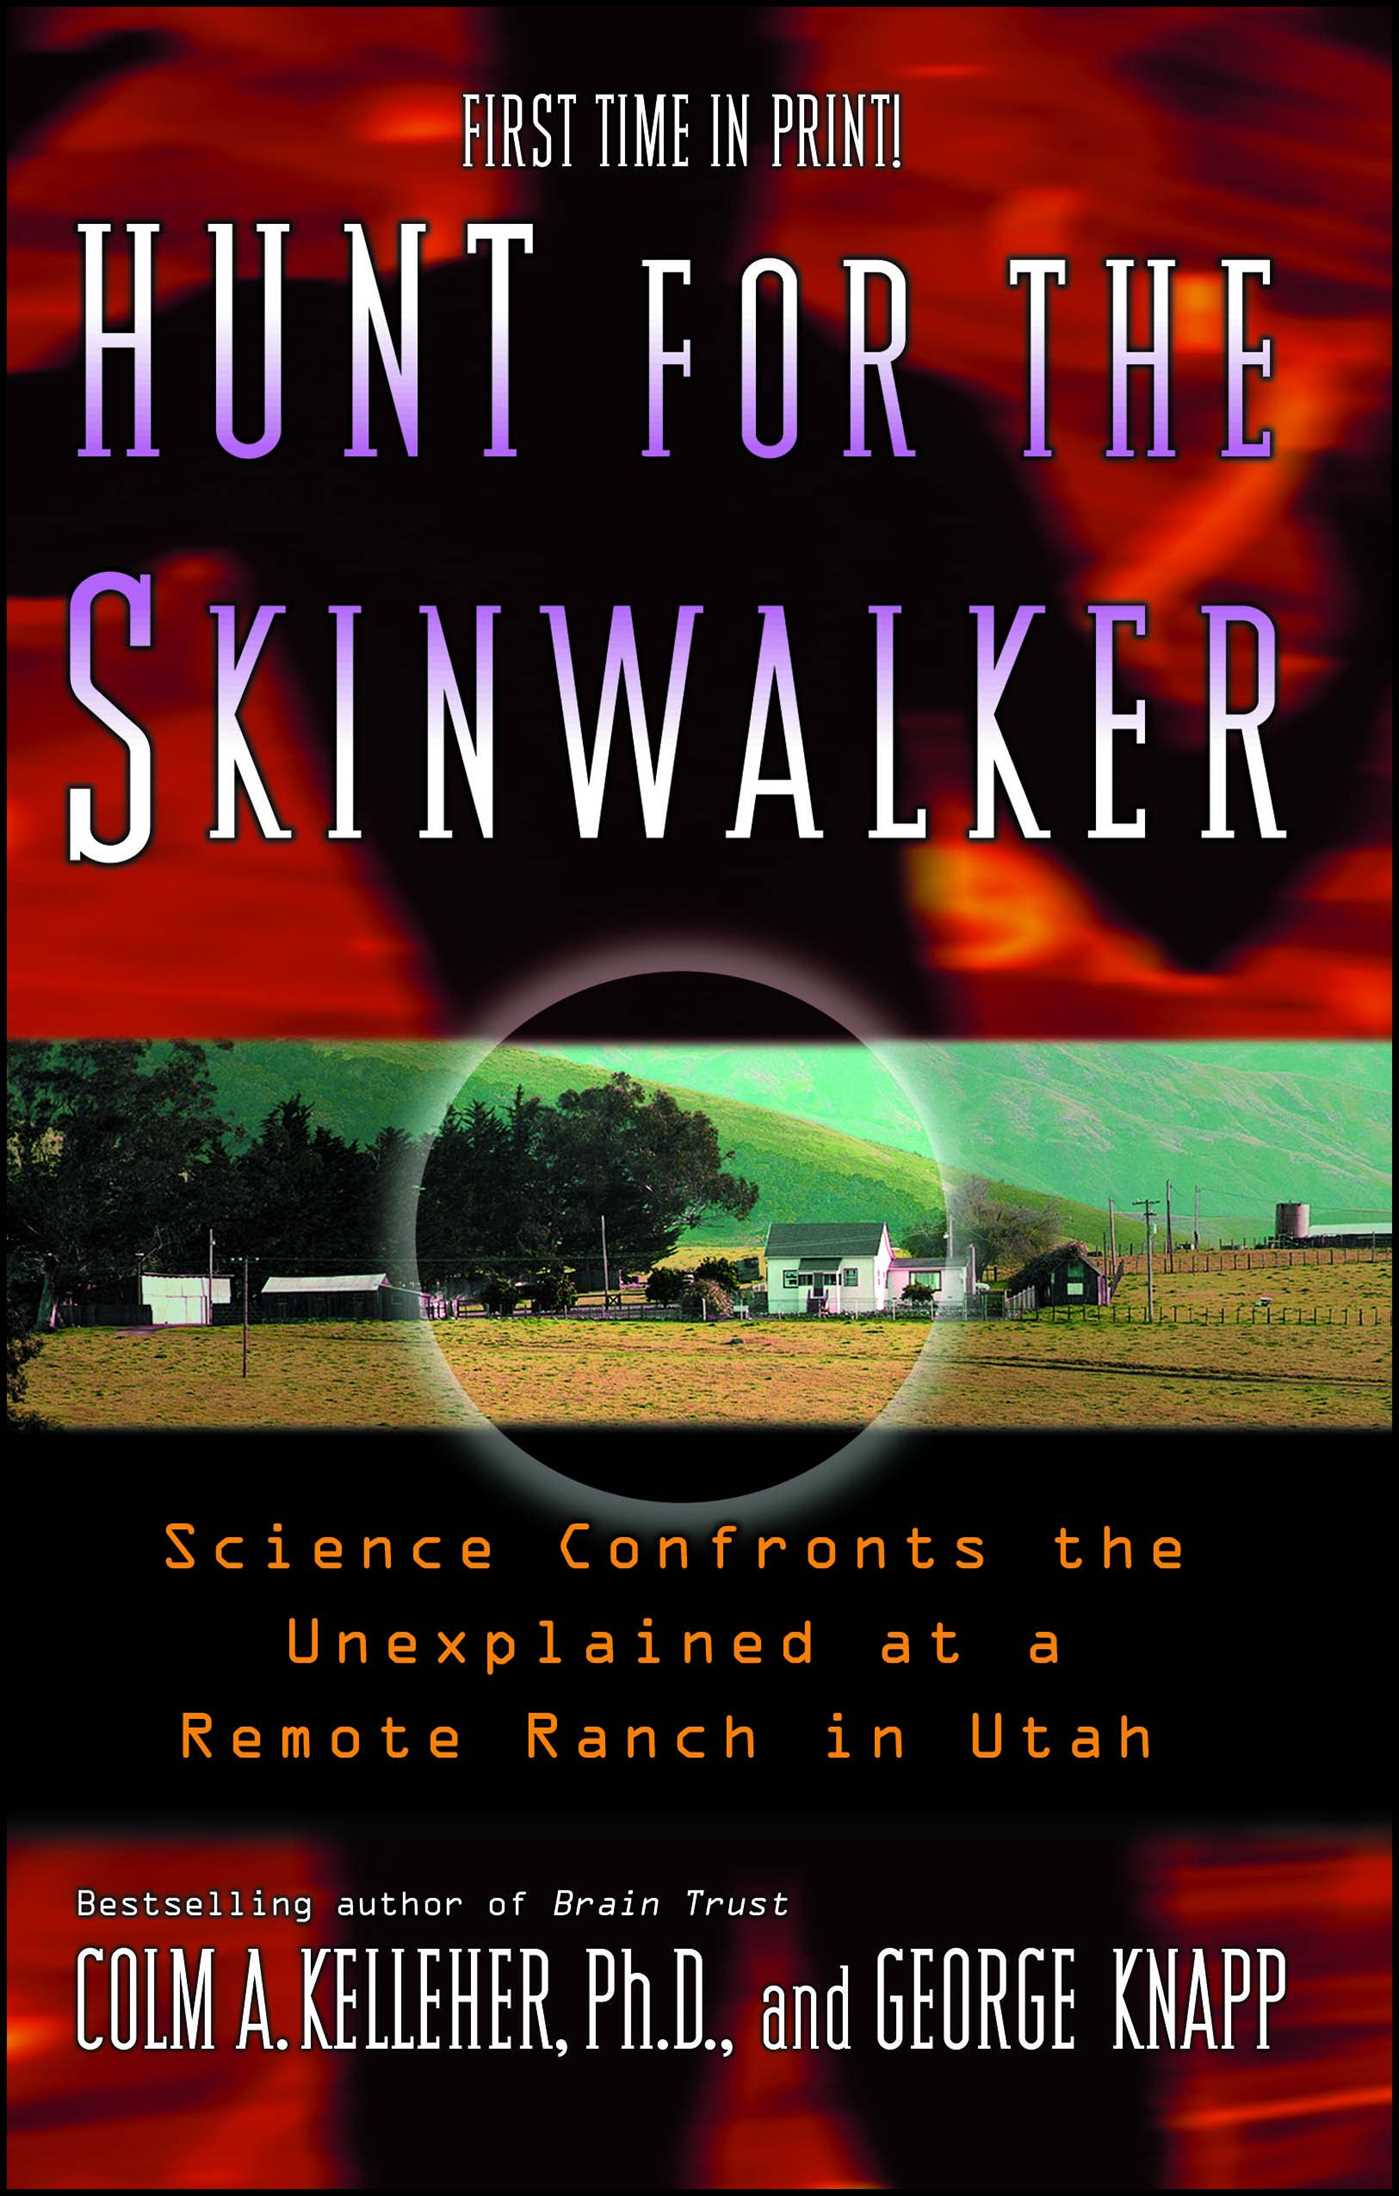 Hunt-for-the-skinwalker-9781416505211_hr